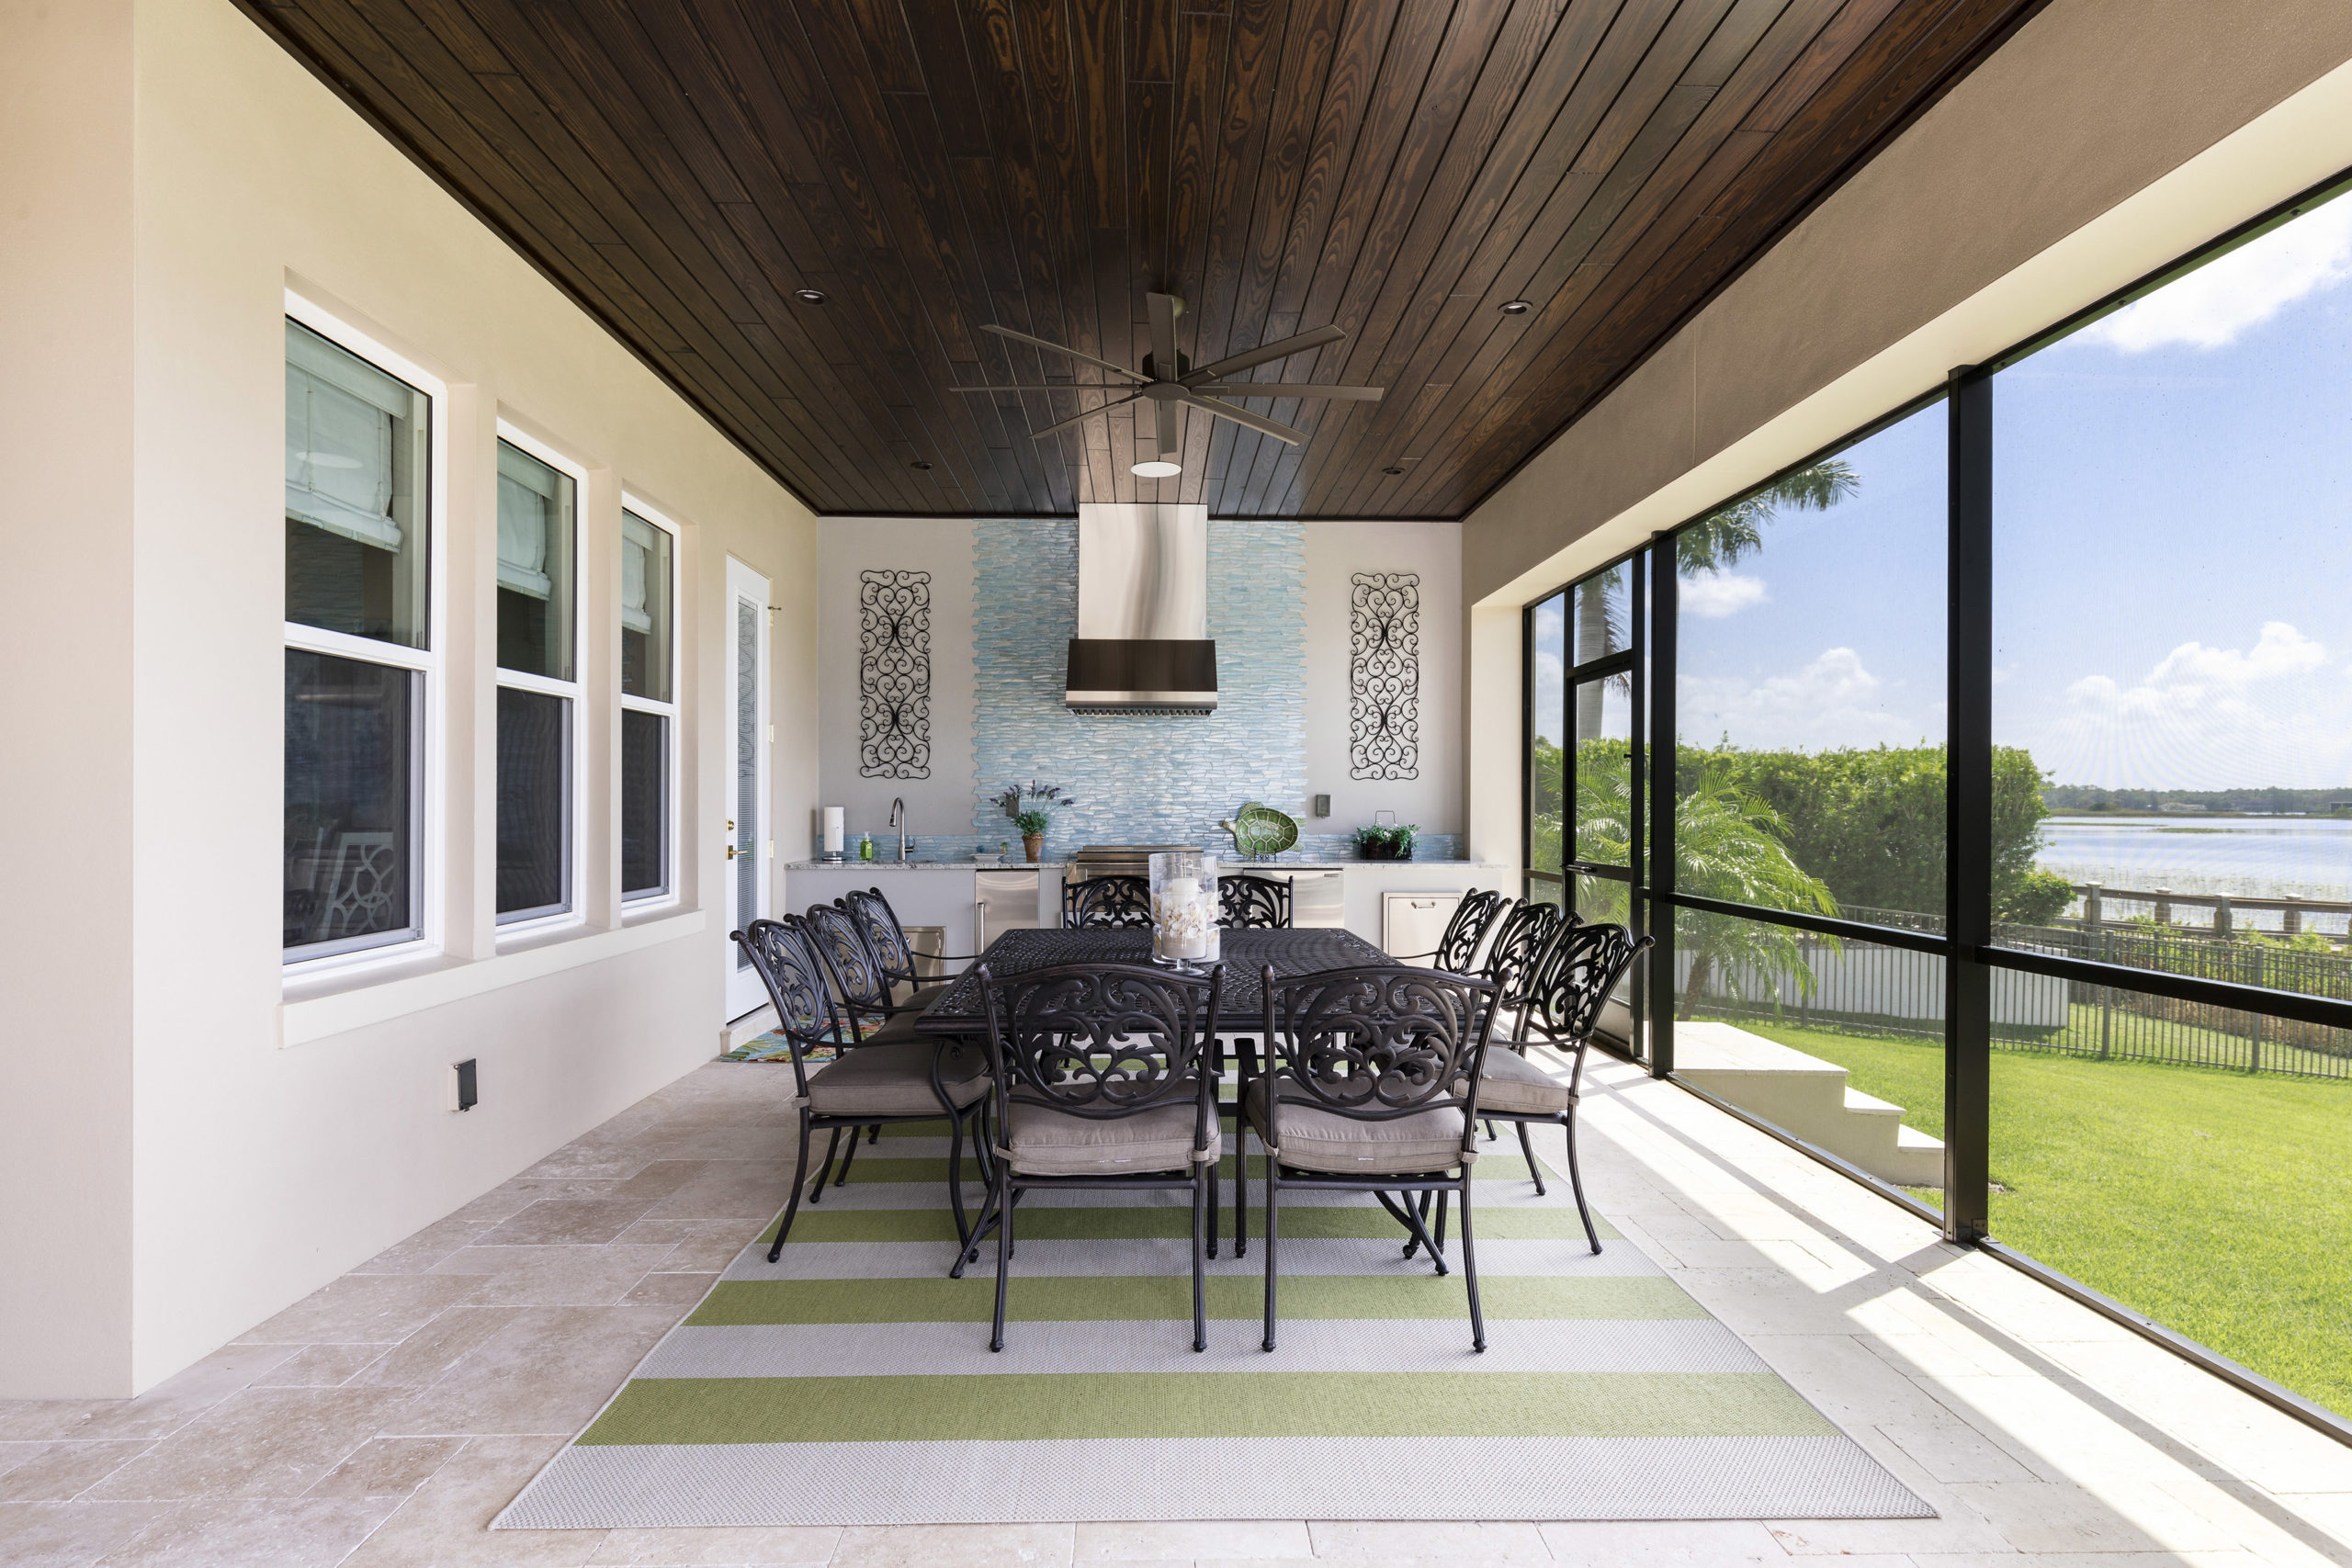 Outdoor stone patio with kitchen